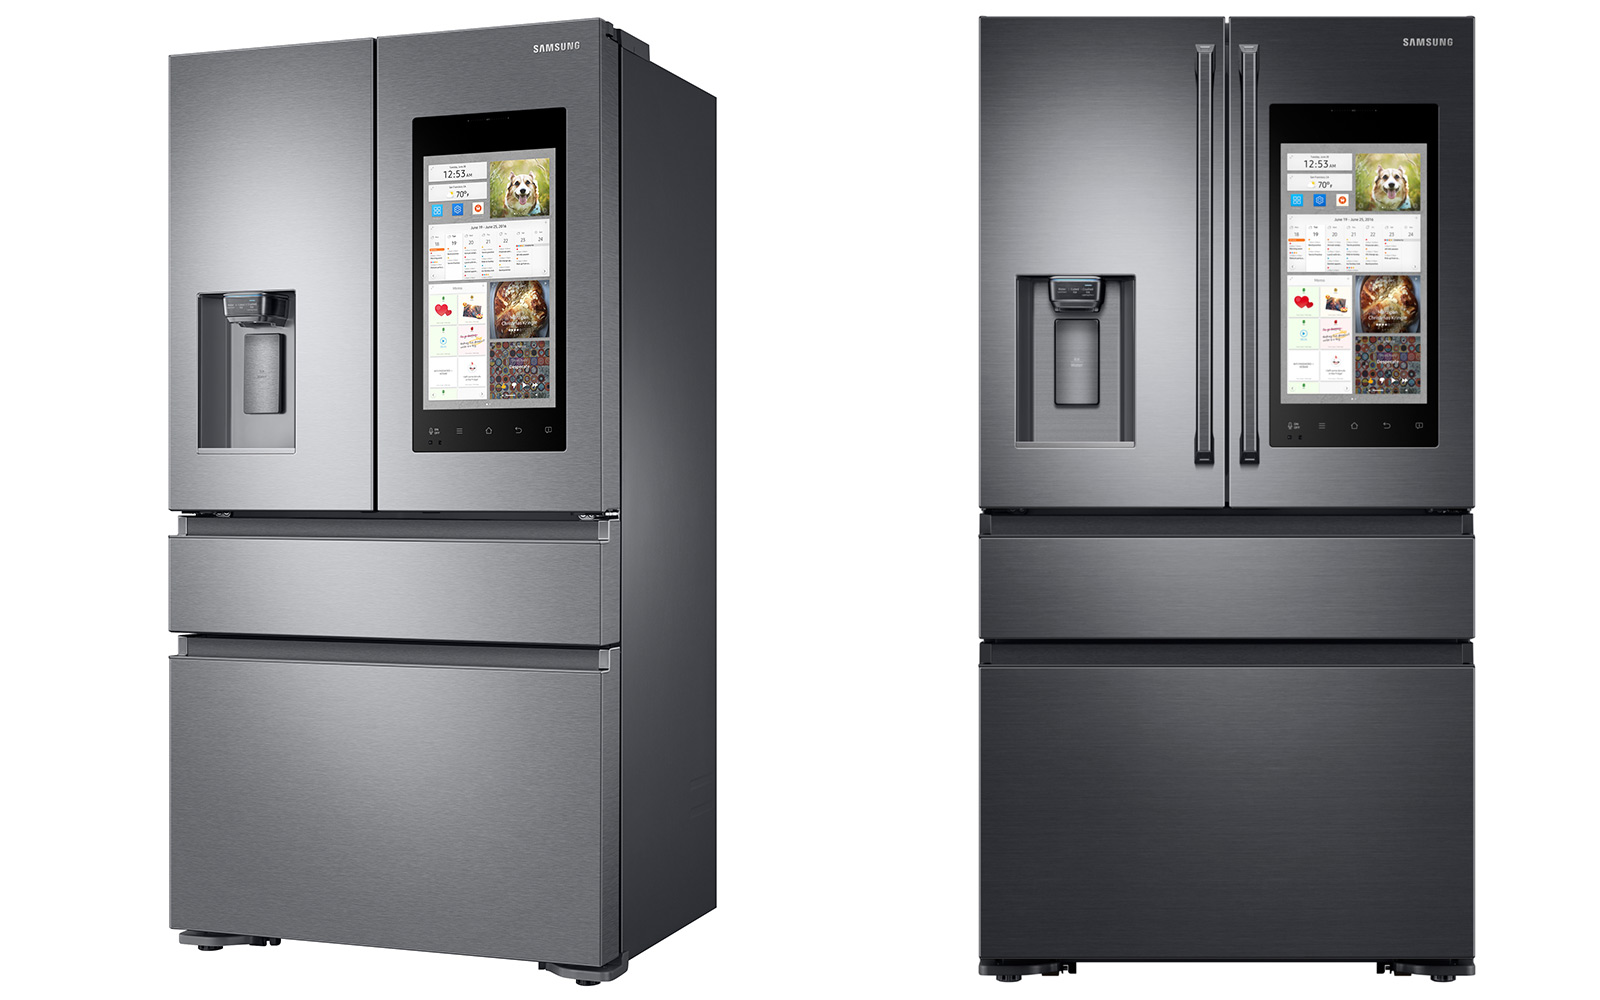 High End Fridges Samsungs Virtual Assistant Might Live In Your Fridge